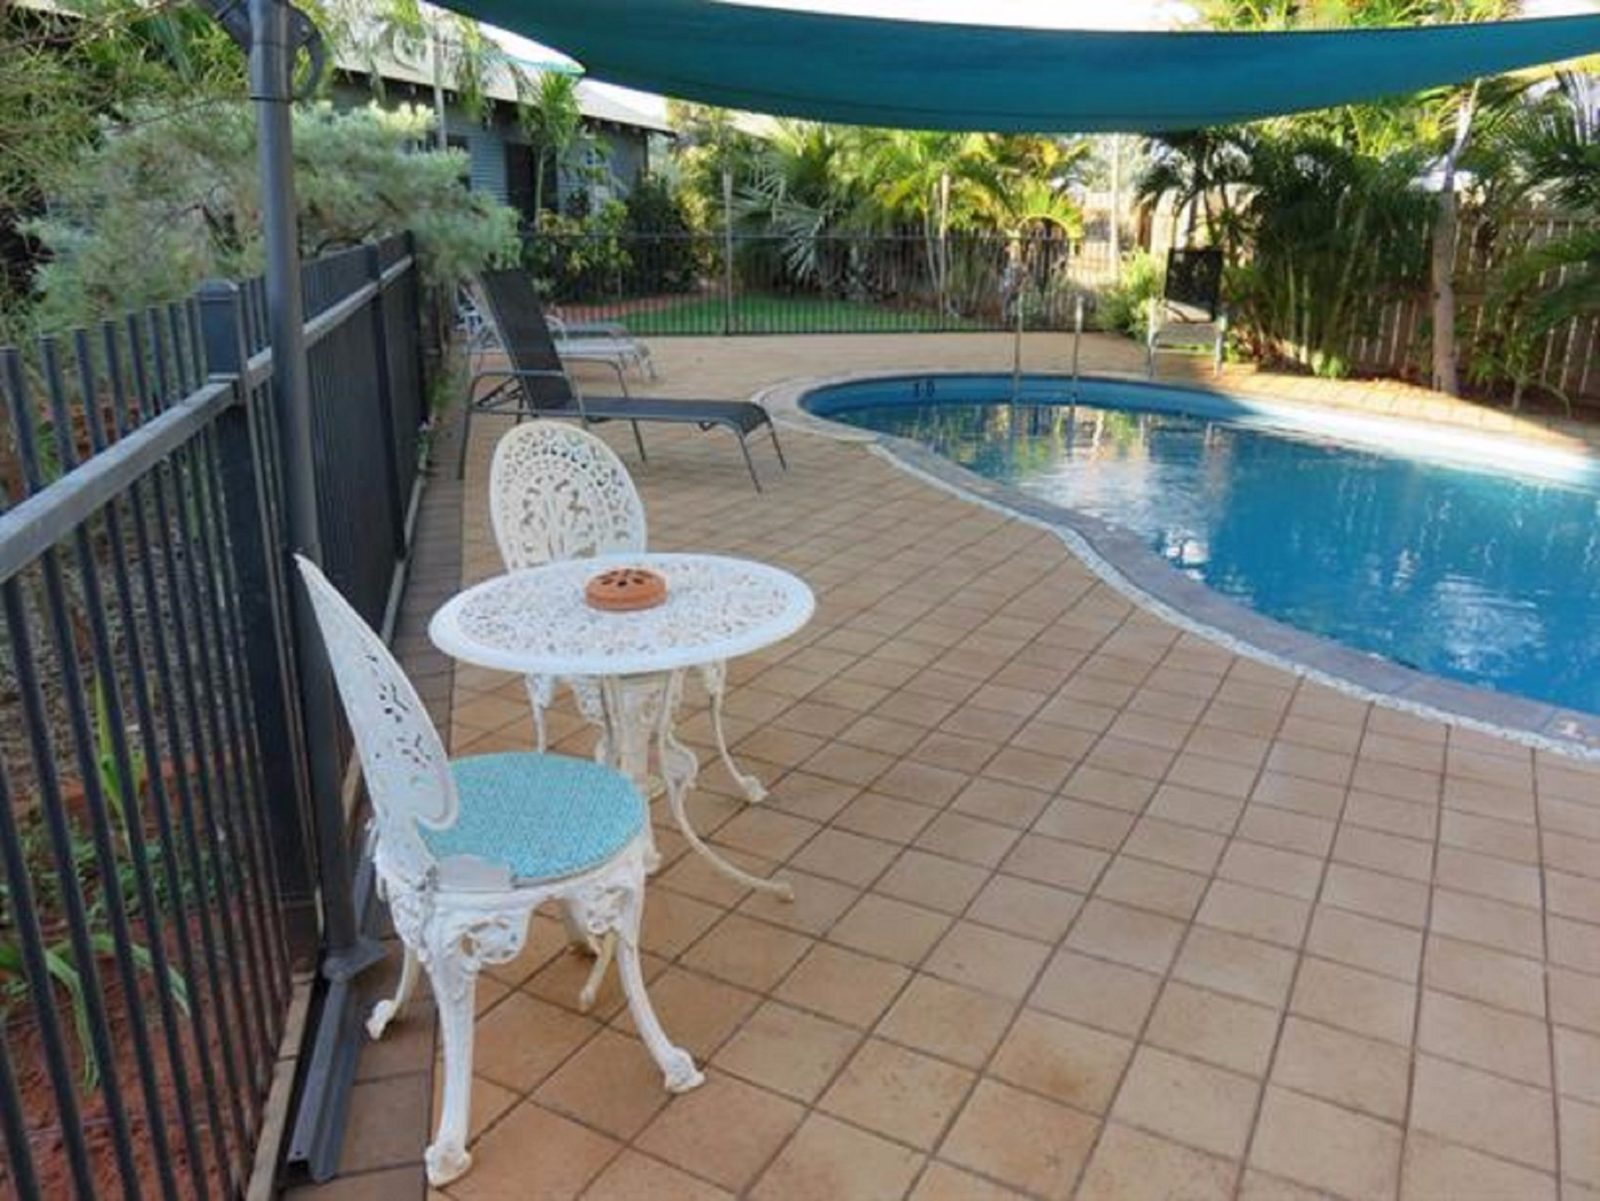 Demco Bed and Breakfast, Broome, Western Australia